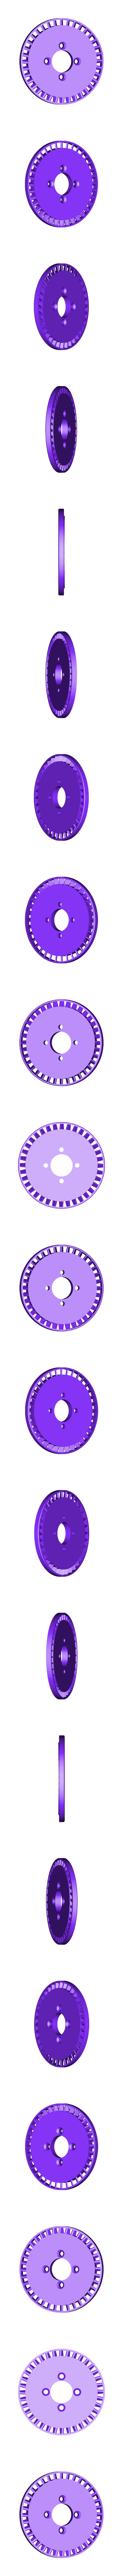 HPT-Rotor01.stl Download STL file Propfan Engine, Pusher Type using with Planetary Gearbox • 3D printer template, konchan77